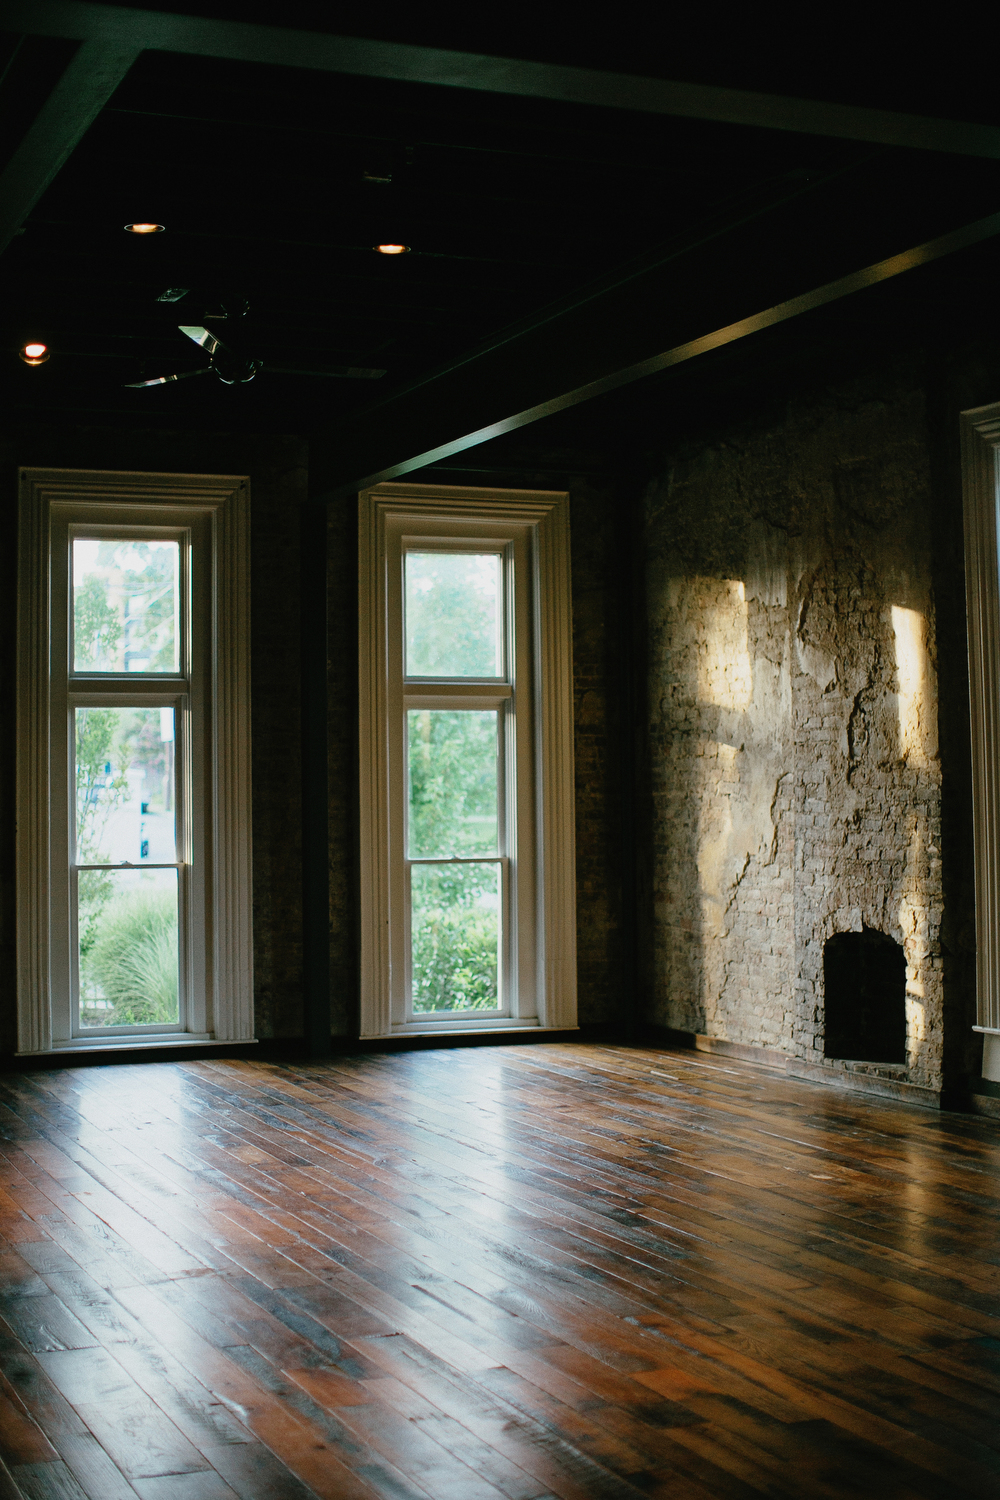 The VICTORIAN front windows & exposed brick